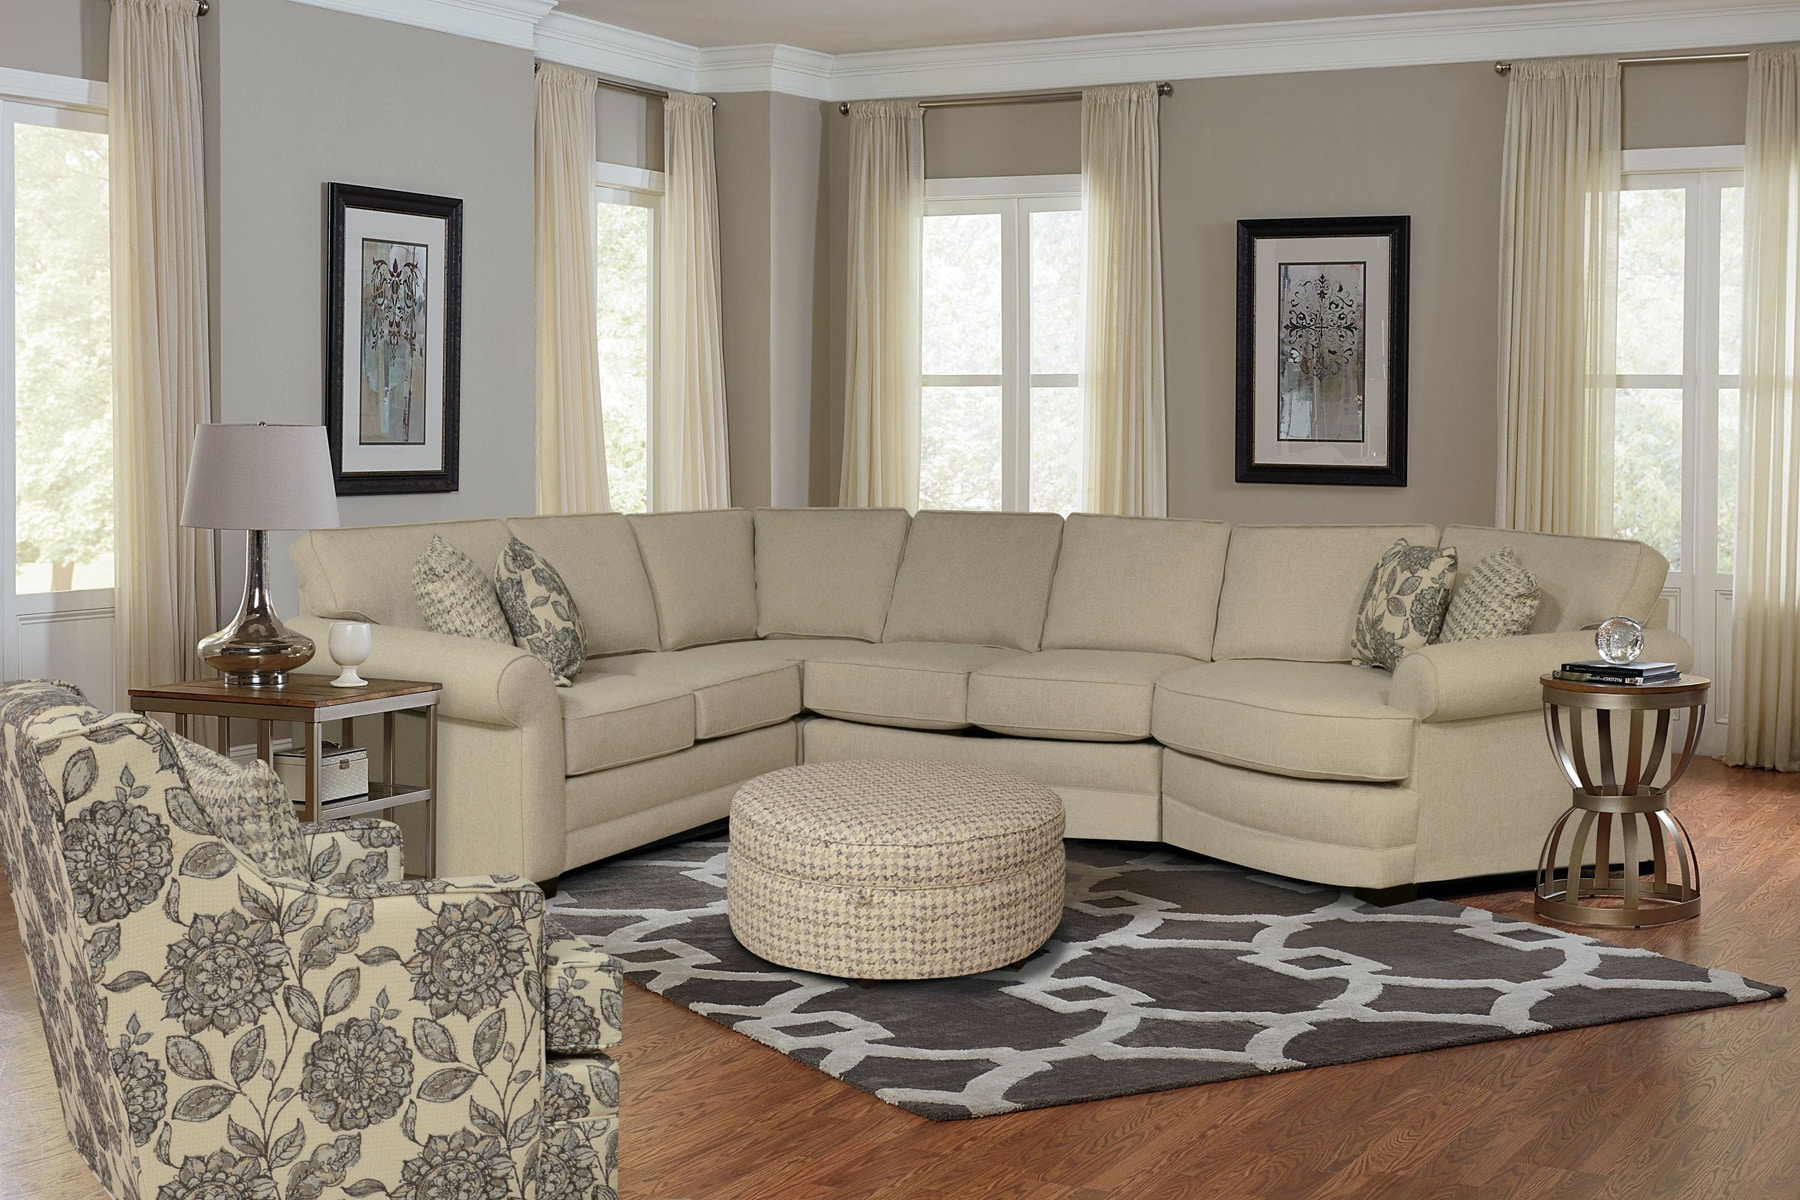 The Brantley Right Cuddler Sectional (939488) Includes The Left Arm Facing  Loveseat, Armless Loveseat, Wedge, And Right Arm Facing Cuddler Seat.